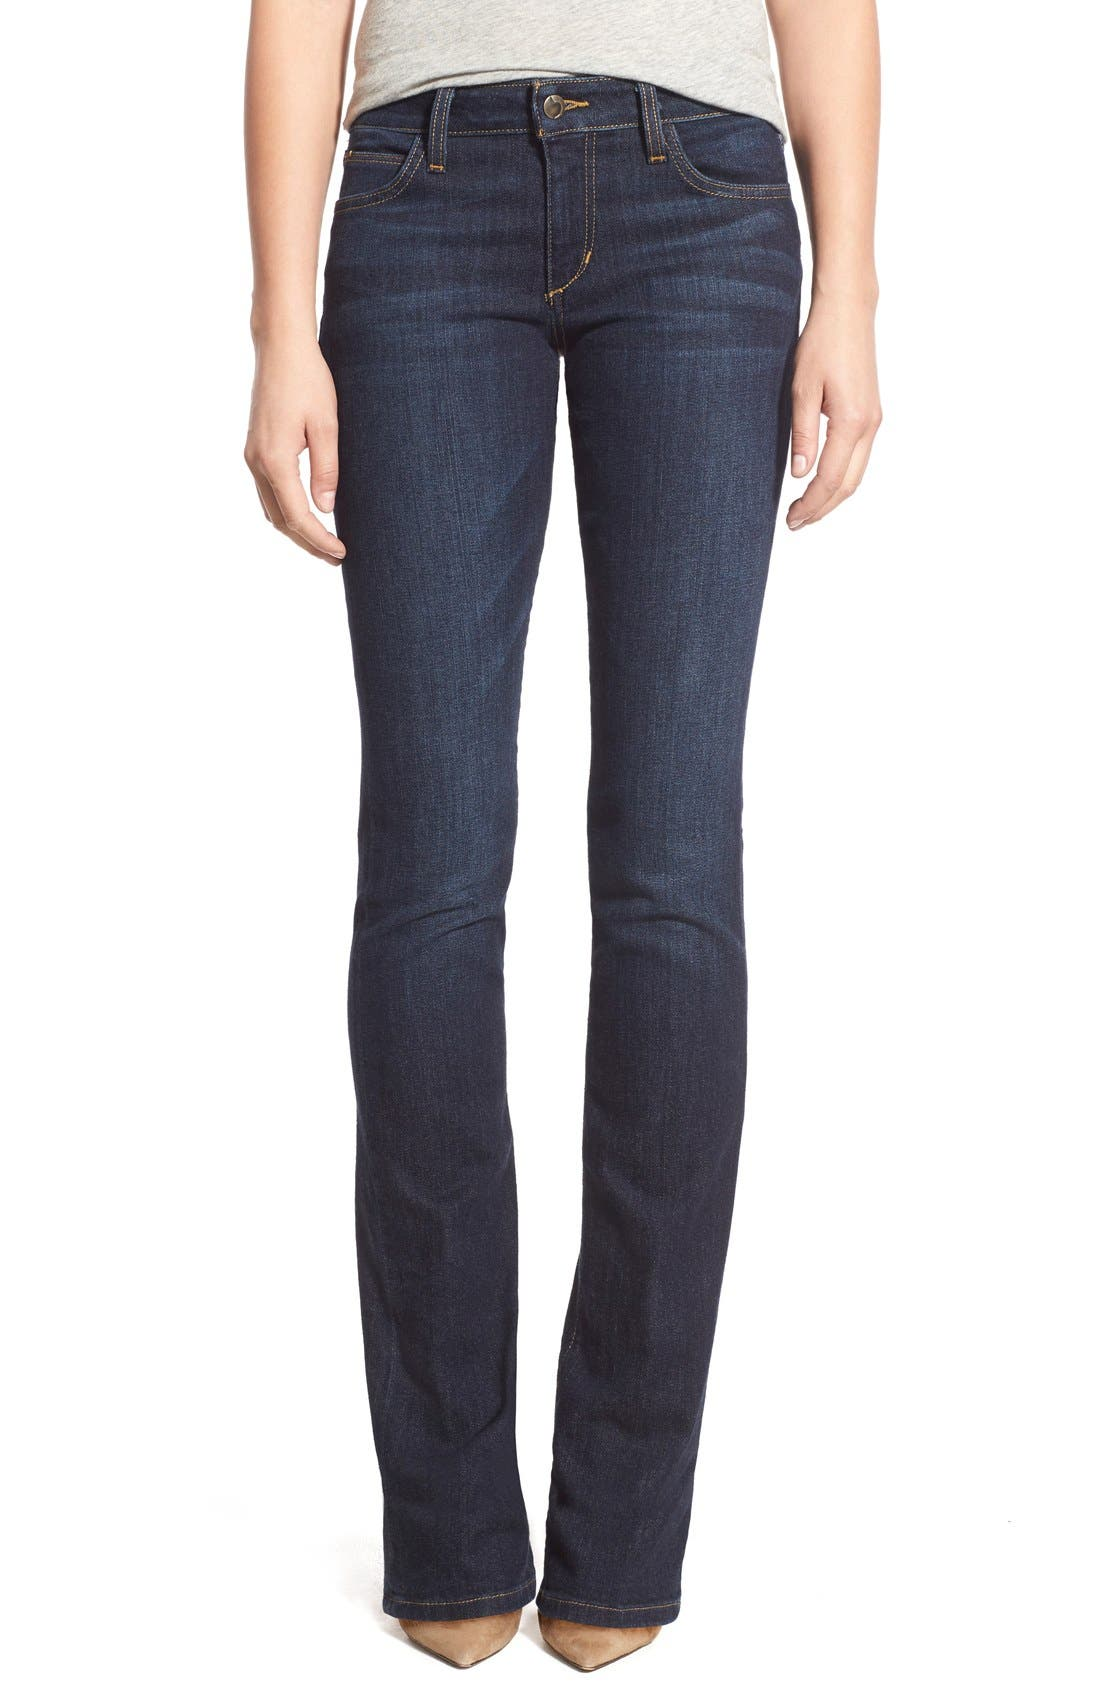 Honey Curvy Bootcut Jeans,                         Main,                         color, RIKKI